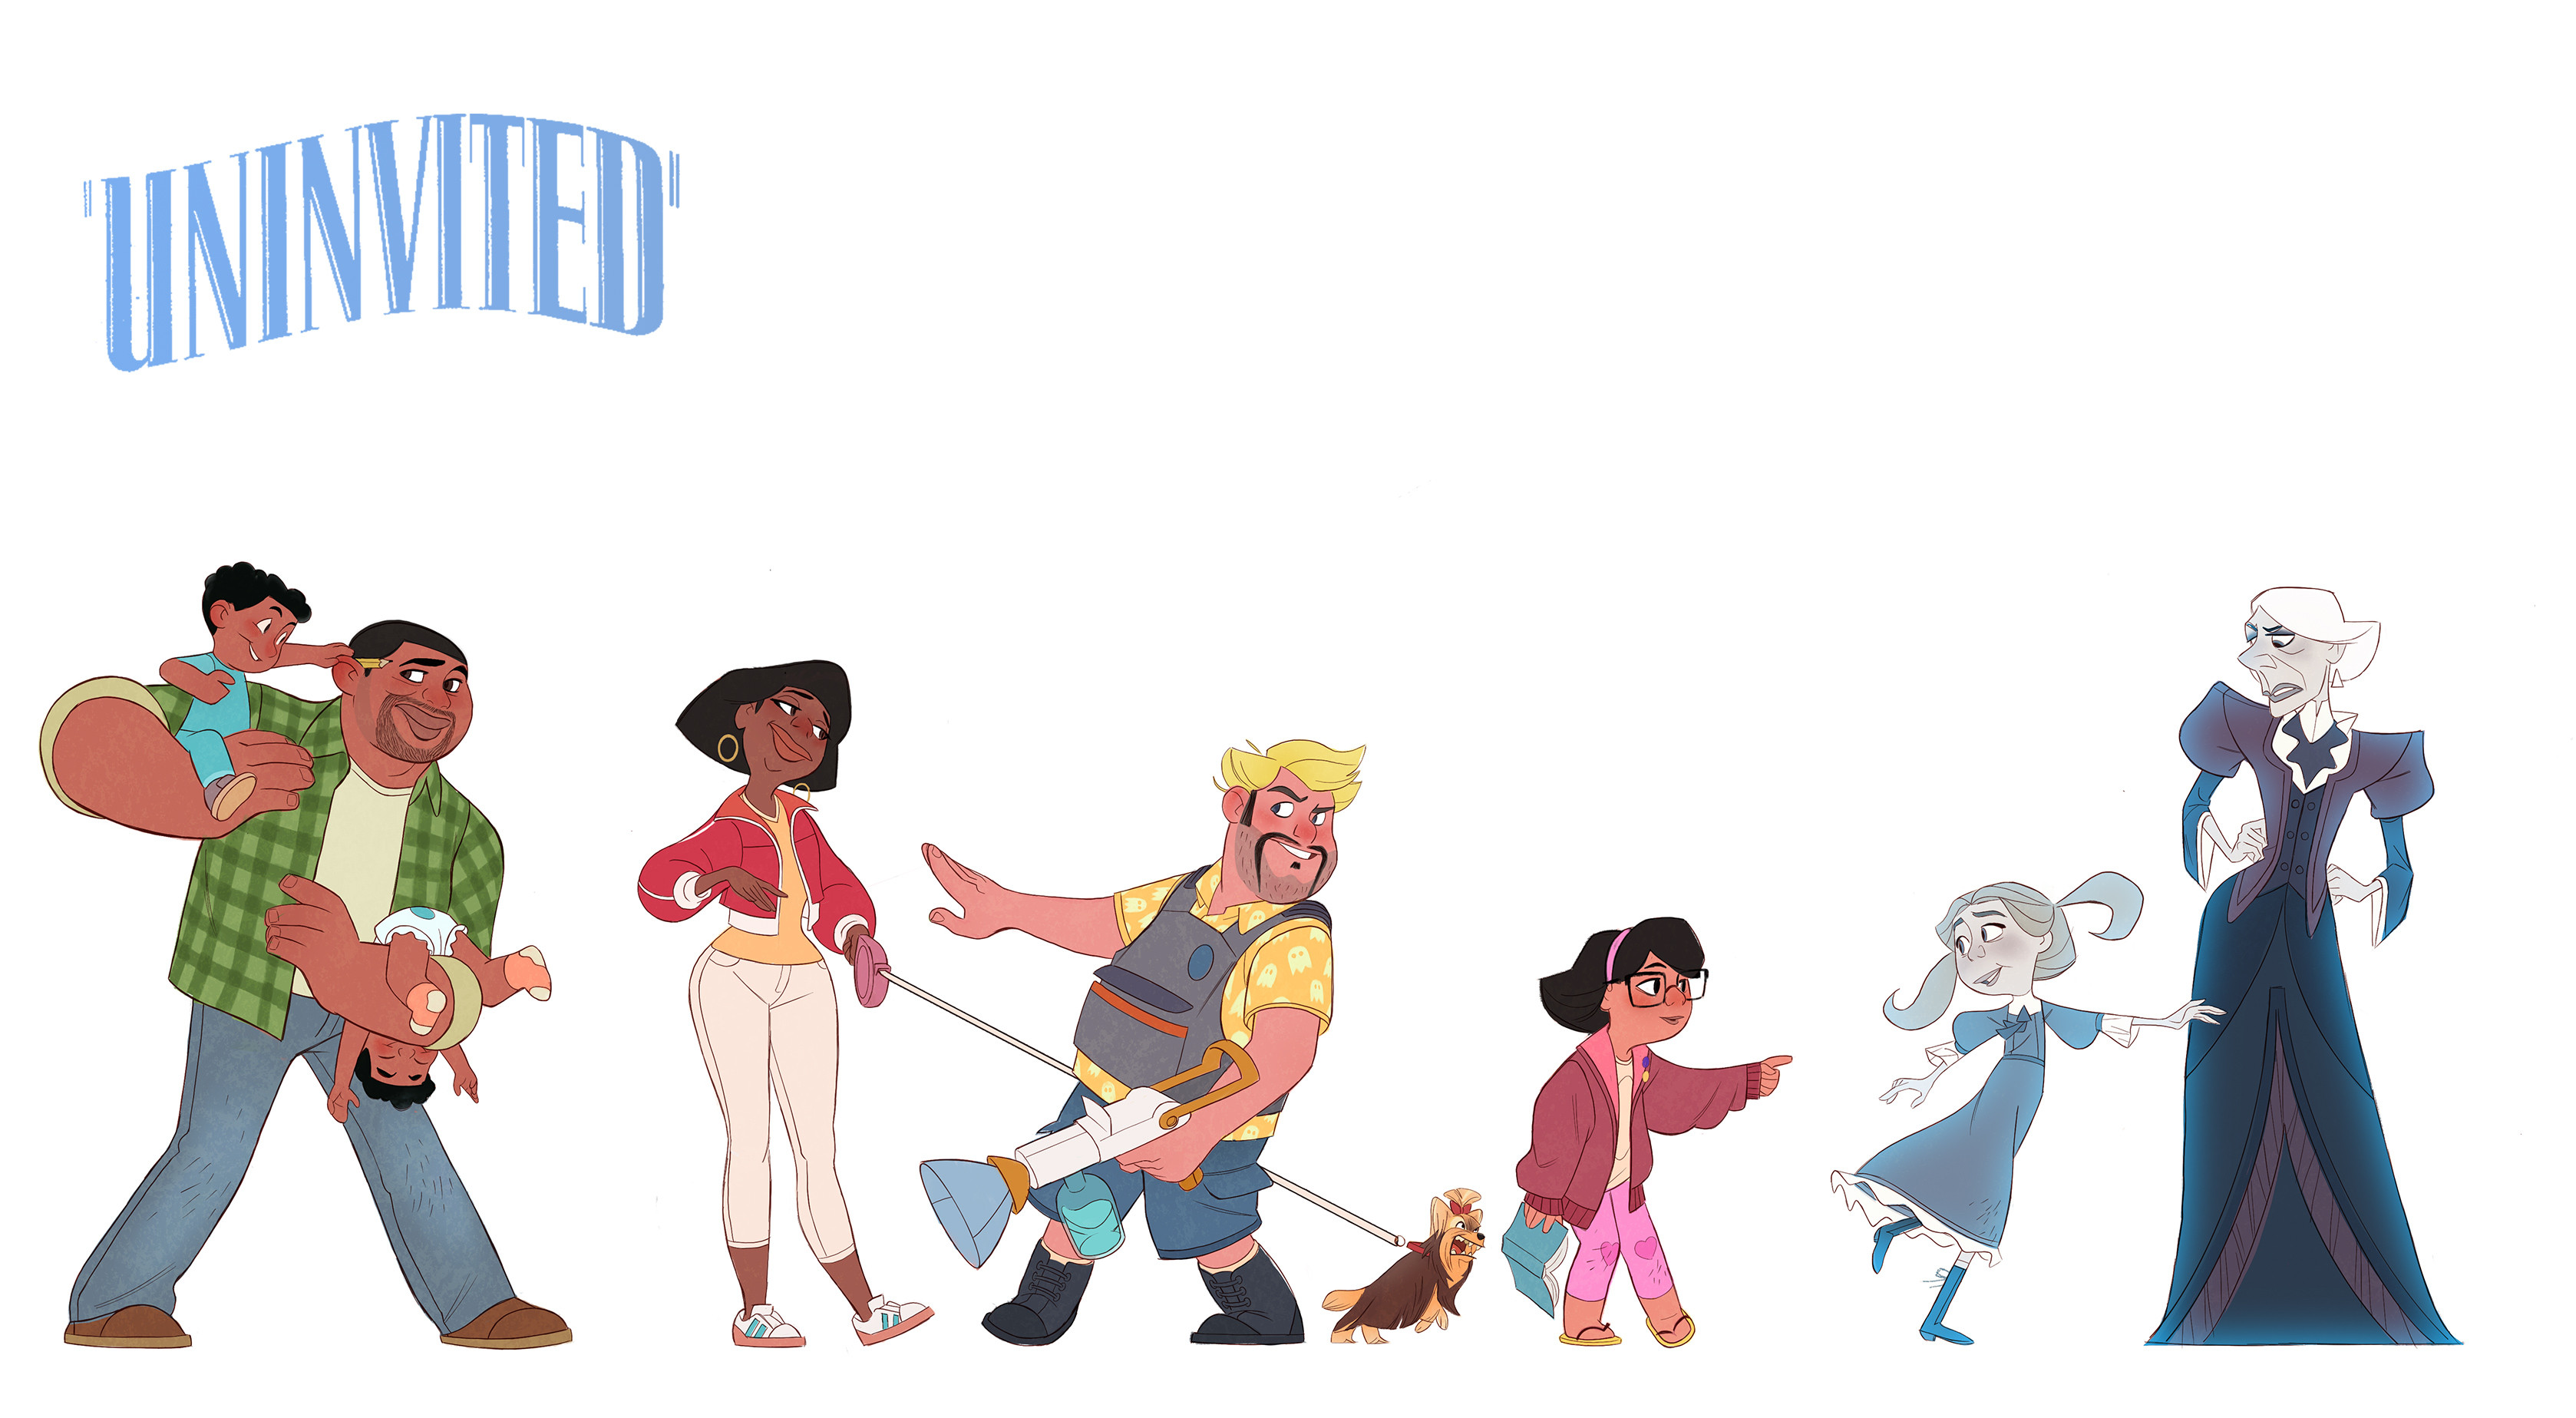 """Final Line up for """"Uninvited"""", a project for """"Character Design Mentorship"""" with Bill Robinson at CGMA"""